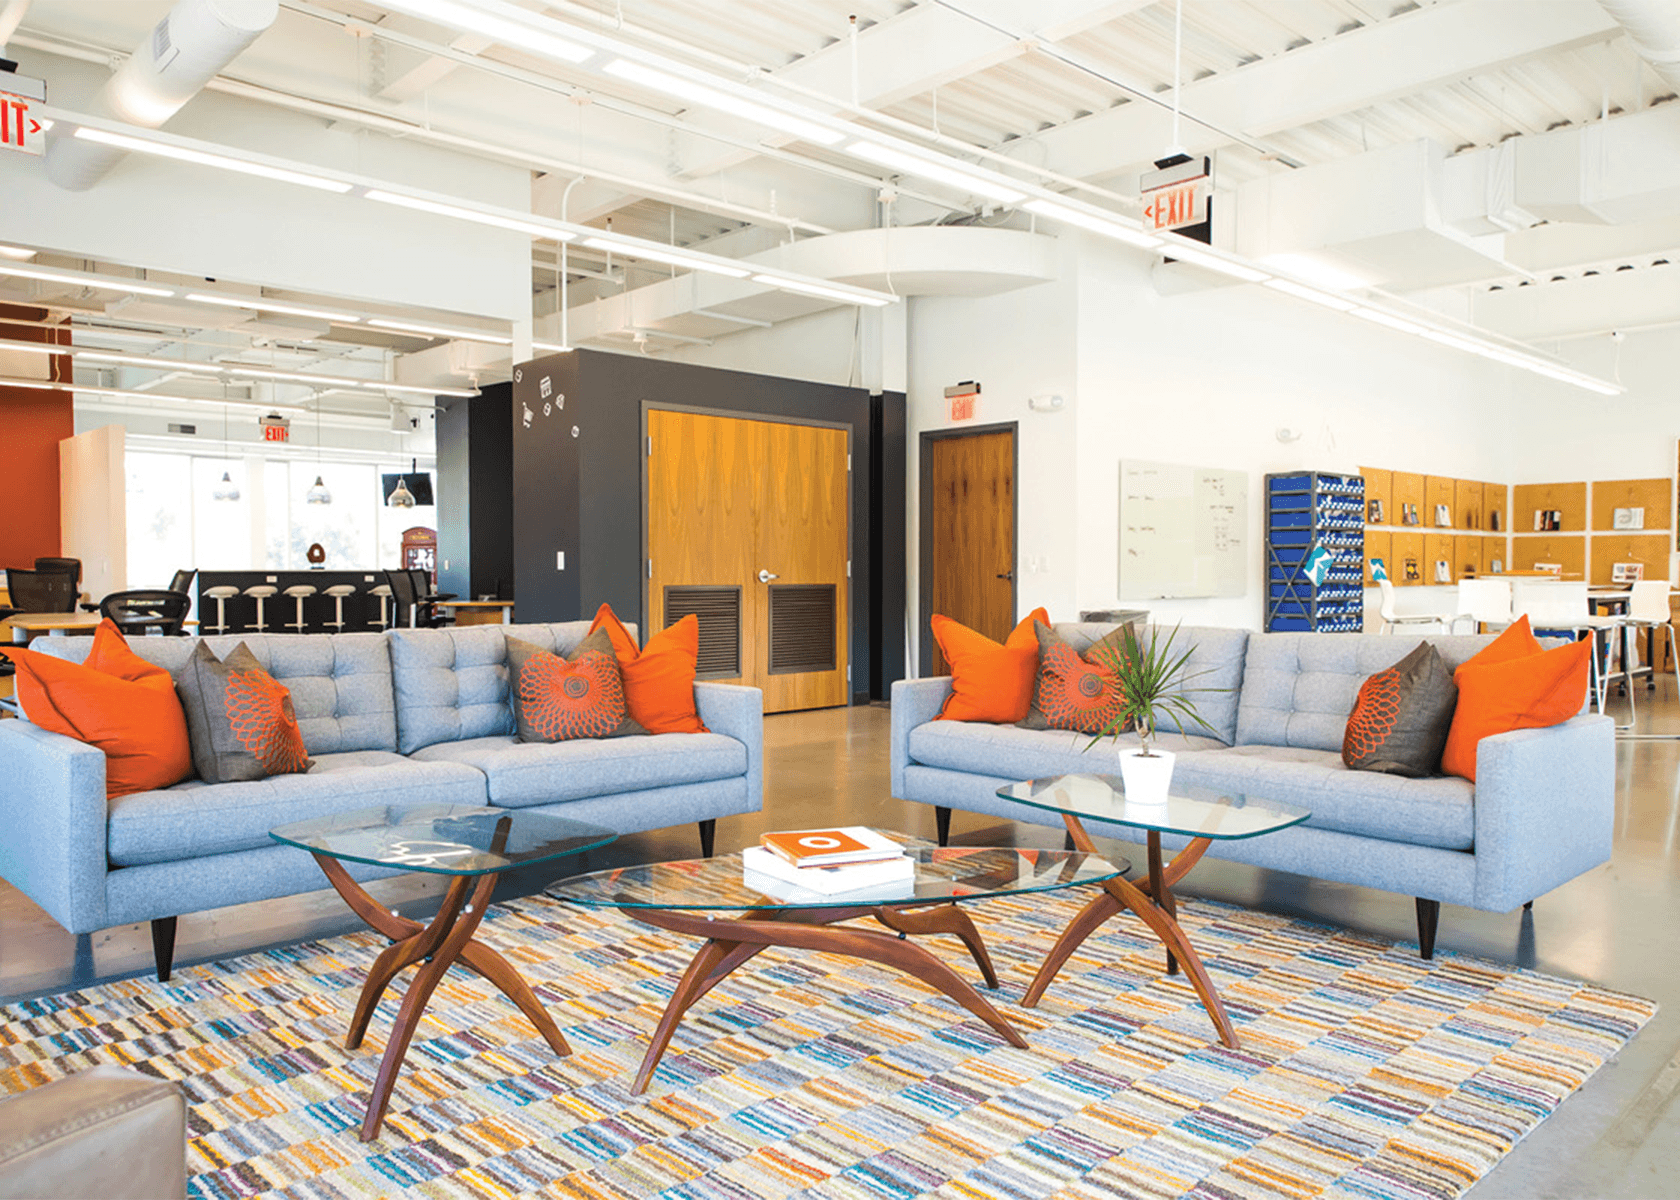 Collaborative workspace with two blue couches and orange accent pillows